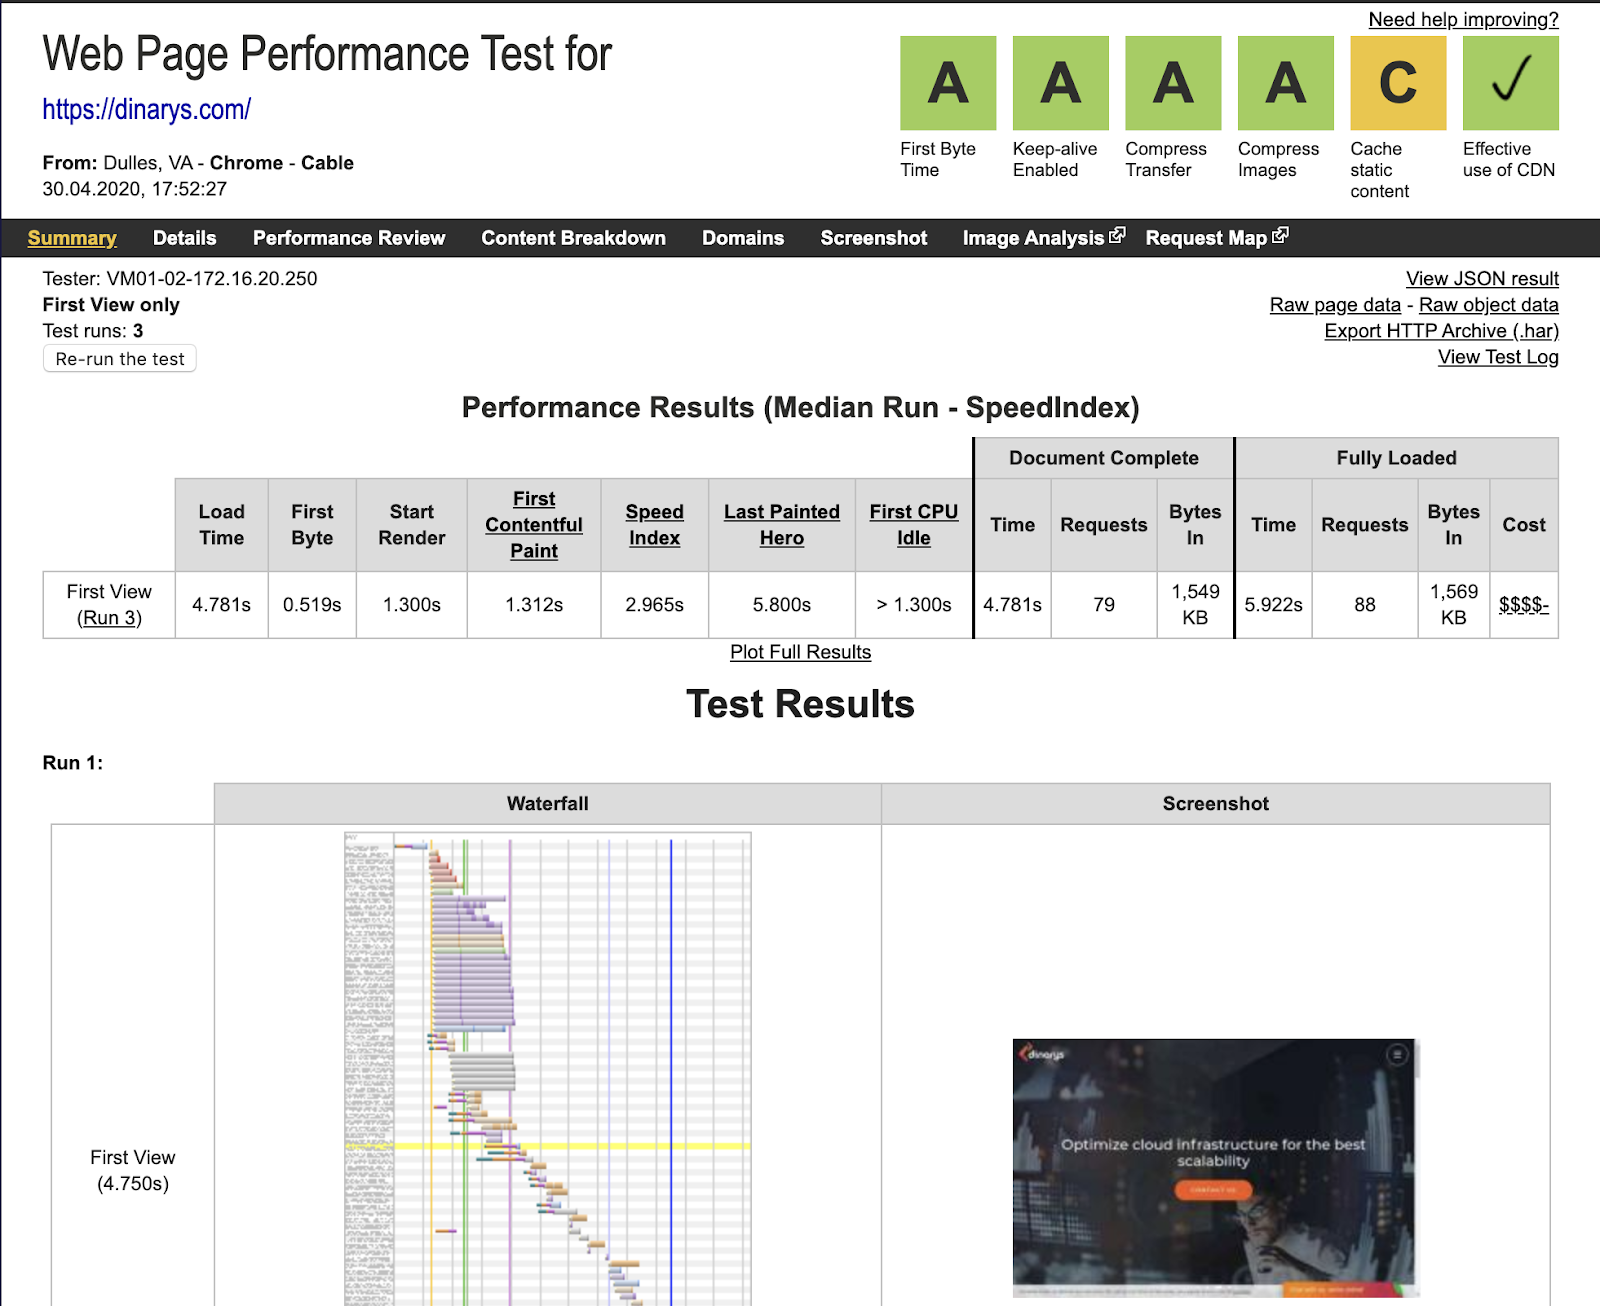 WebPage Performance Test